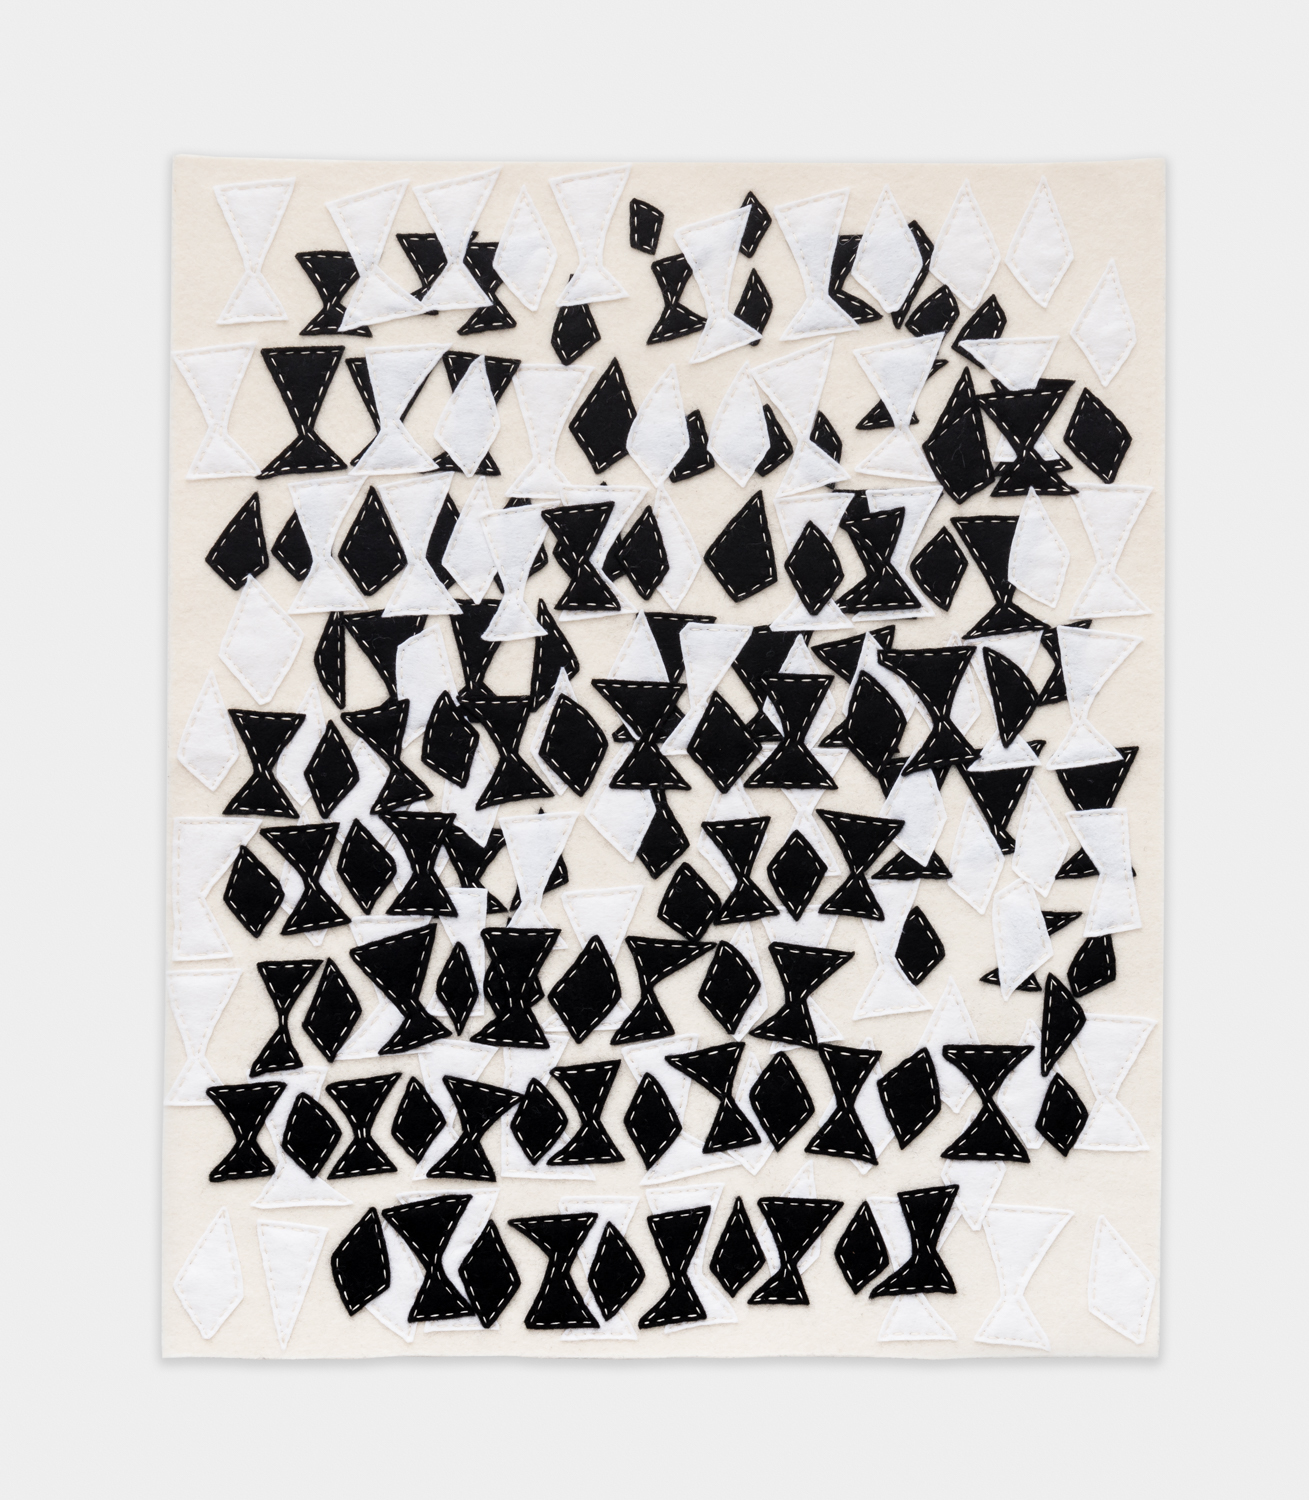 William J. O'Brien  Untitled  2015 Felt on felt 24h x 20w in WOB1023